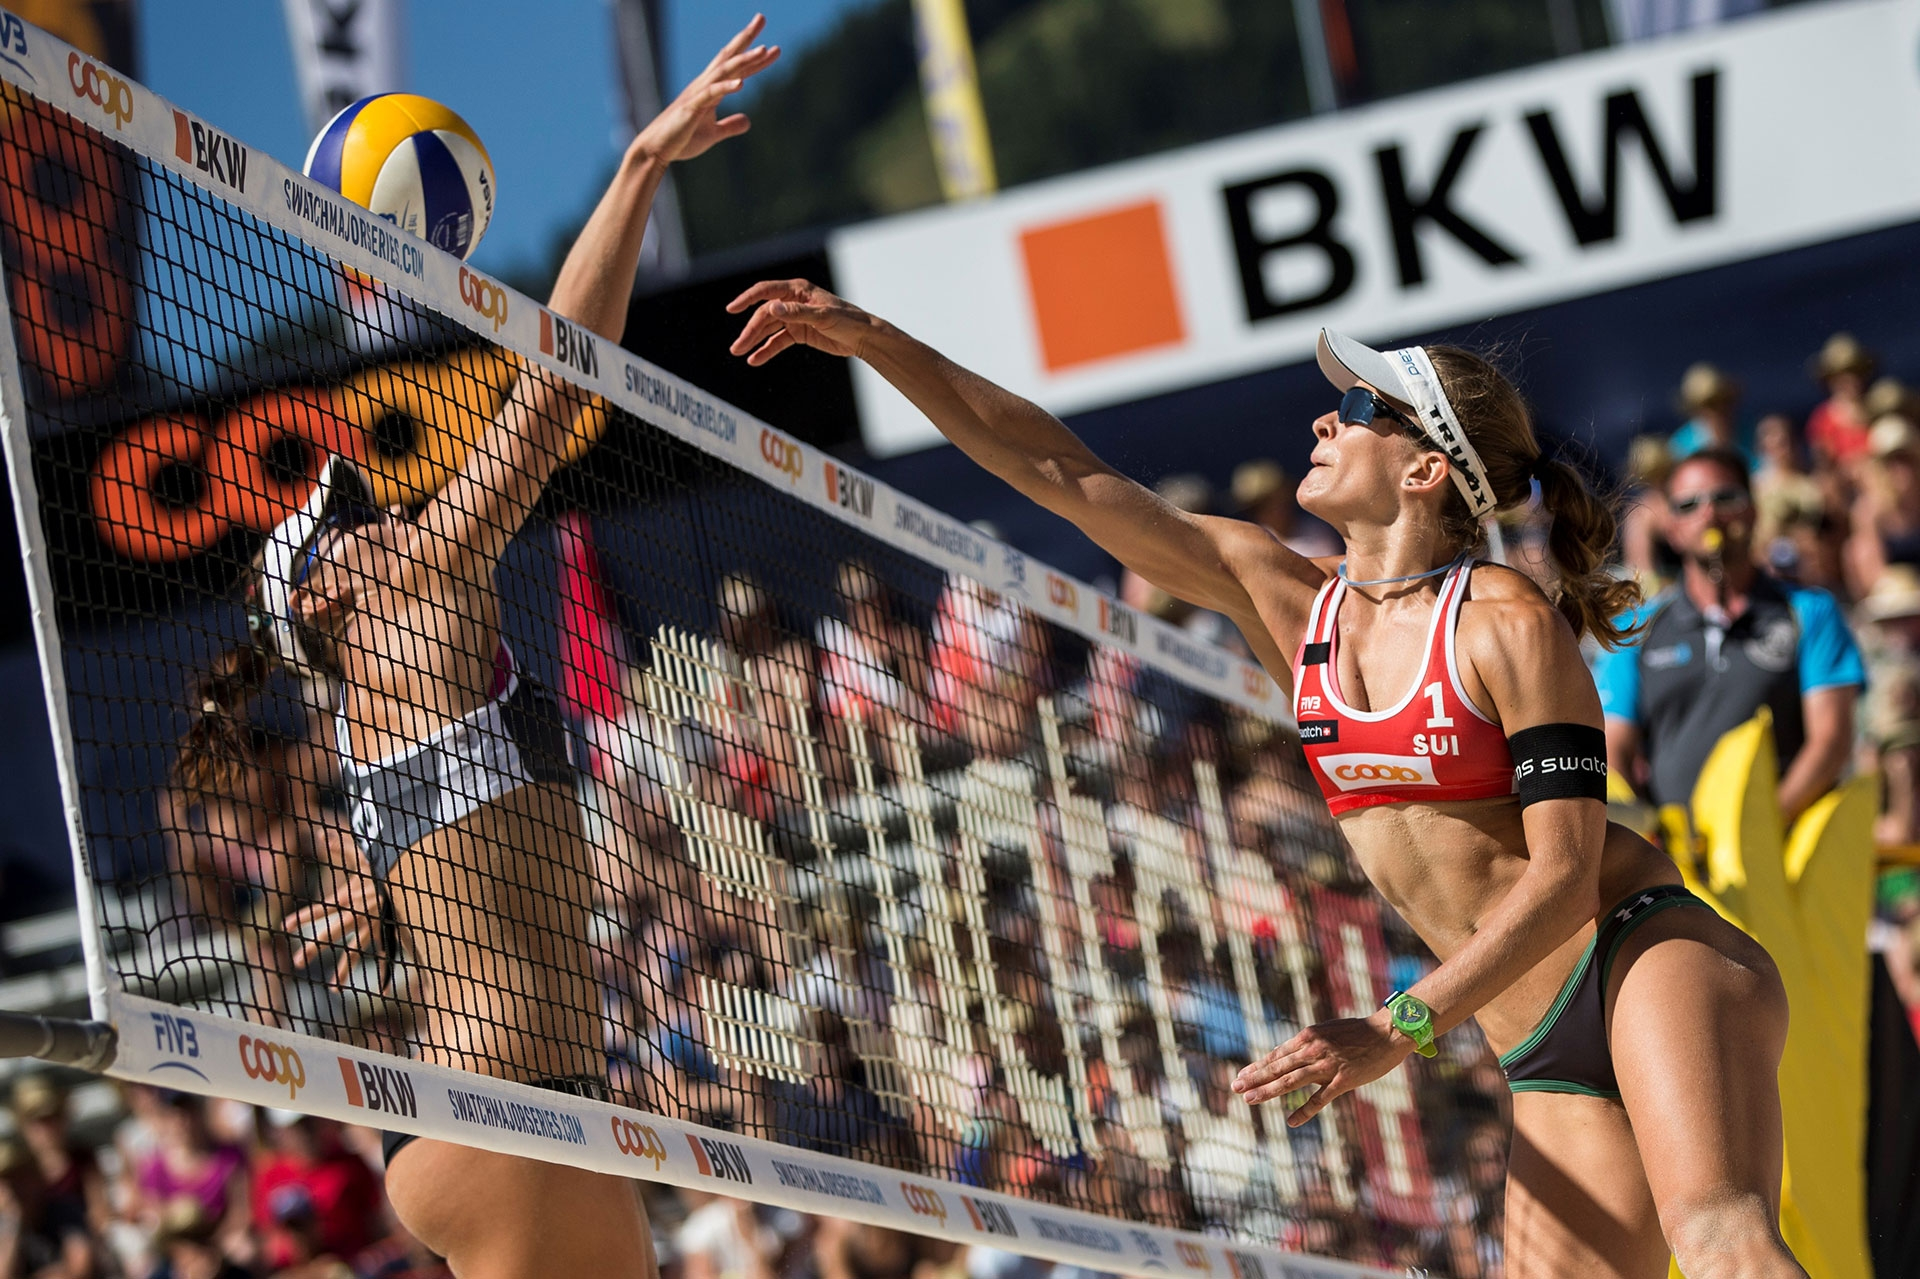 Nadine Zumkehr (right) will play her second Olympics this summer. Credit: Samo Vidic